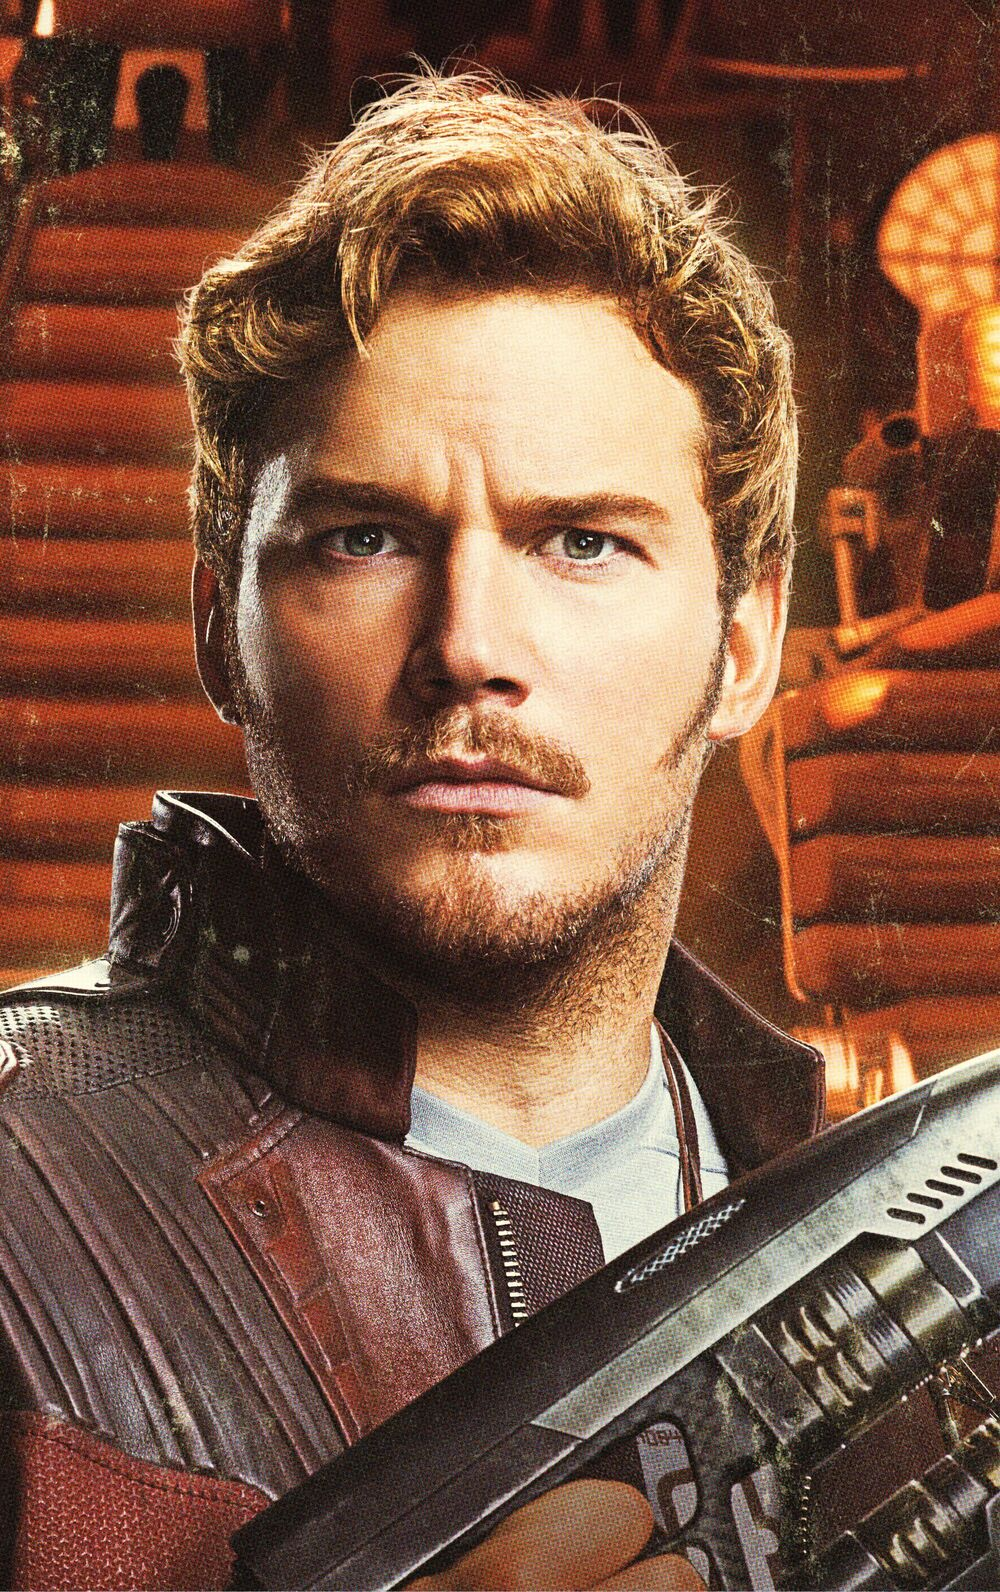 MBTI enneagram type of Peter Quill/Star-Lord